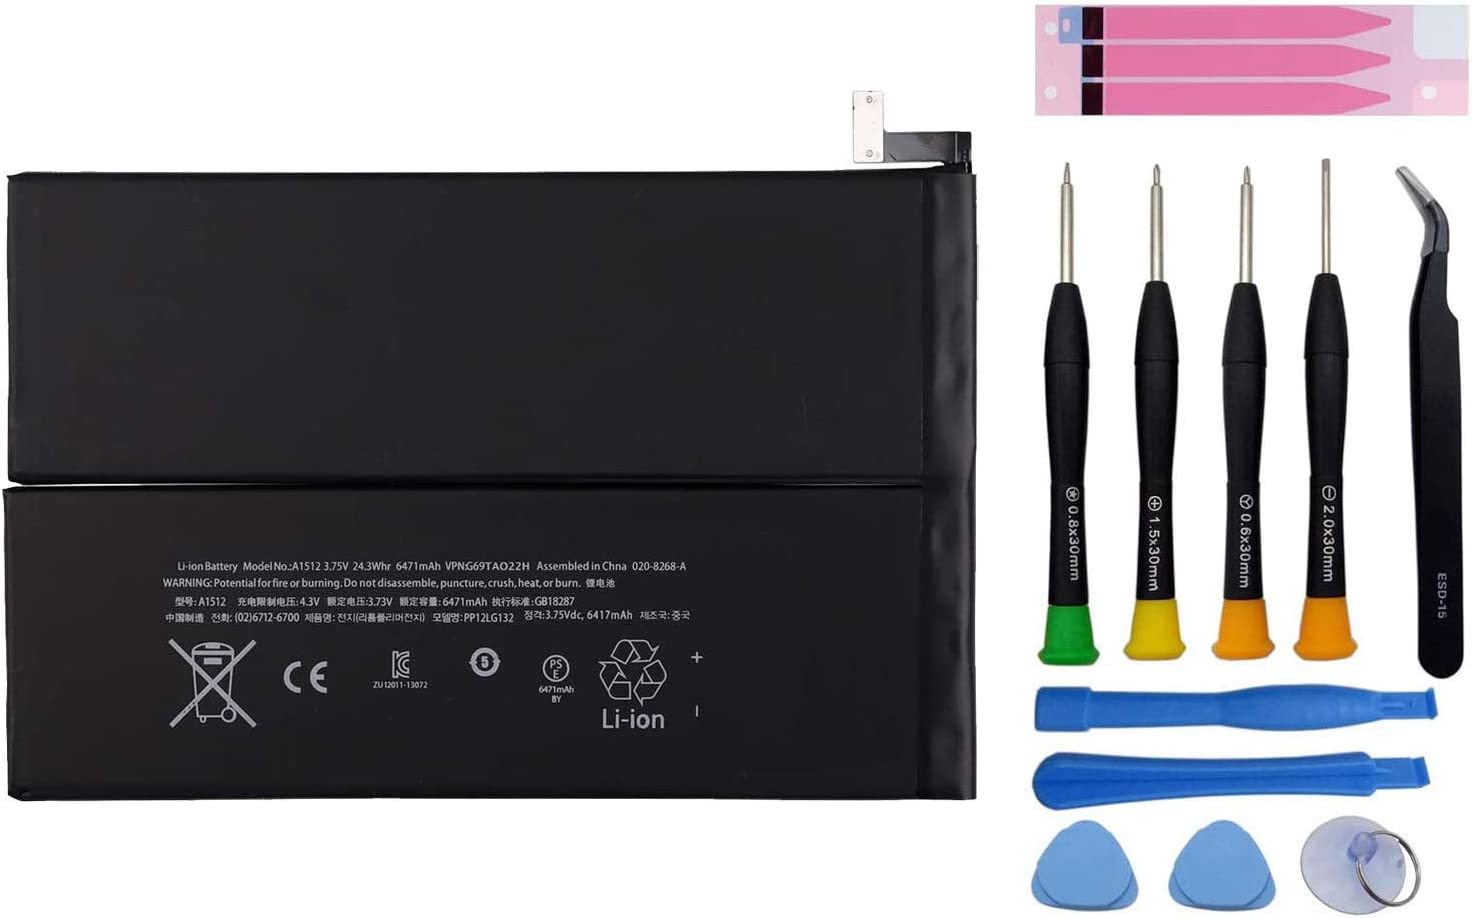 Pattaya New Replacement Battery A1512 Compatible with A1512 iPad Mini 2 iPad Mini 3 A1599 A1600 A1601 A1489 A1490 A1491 A1512